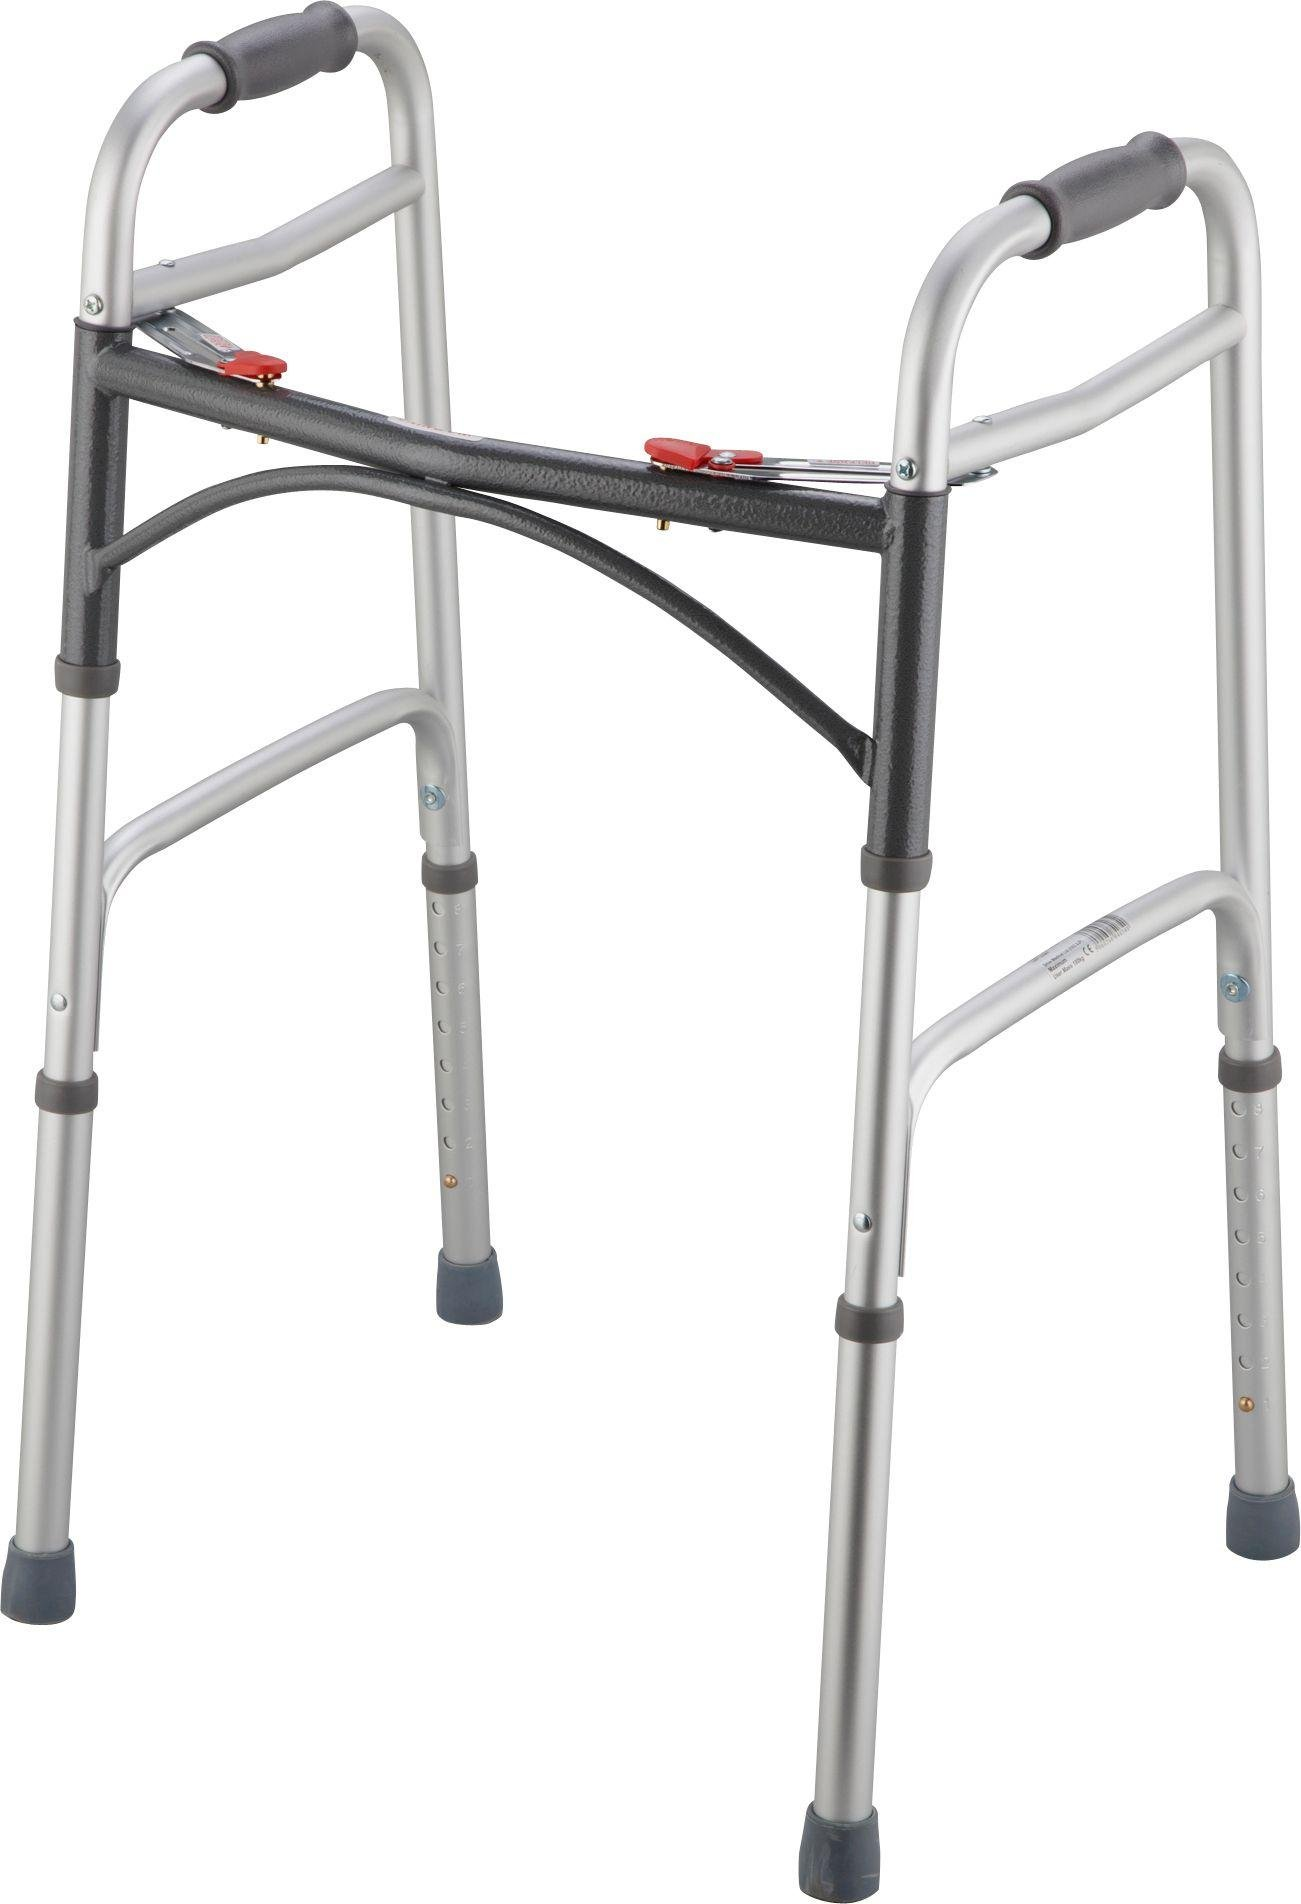 Folding Walking Frame - Height Adjustable.